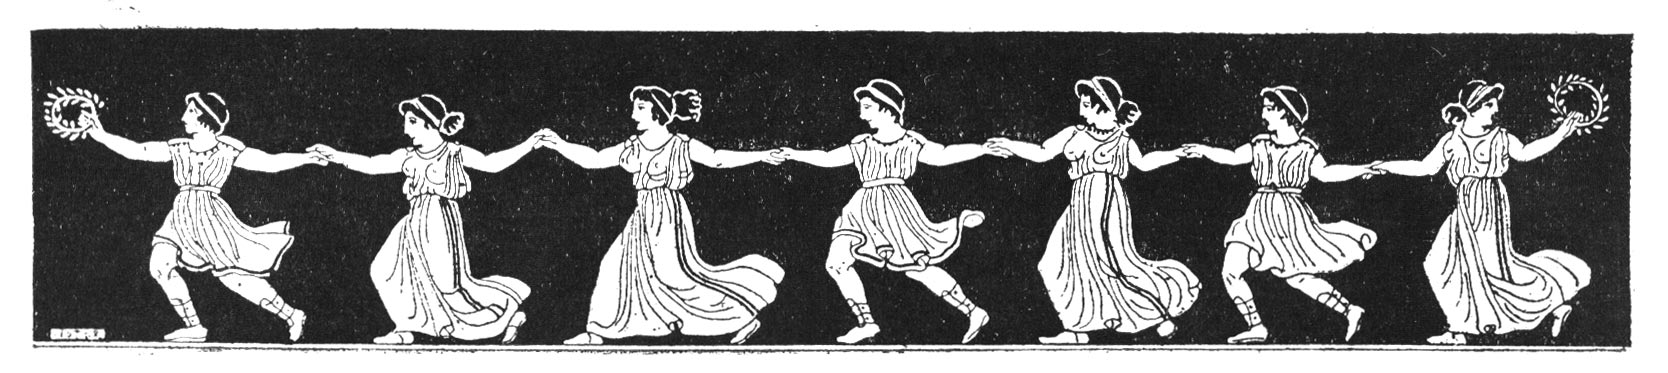 The spirit of the dance is as alive today in Greece as it was 3000 years ago.